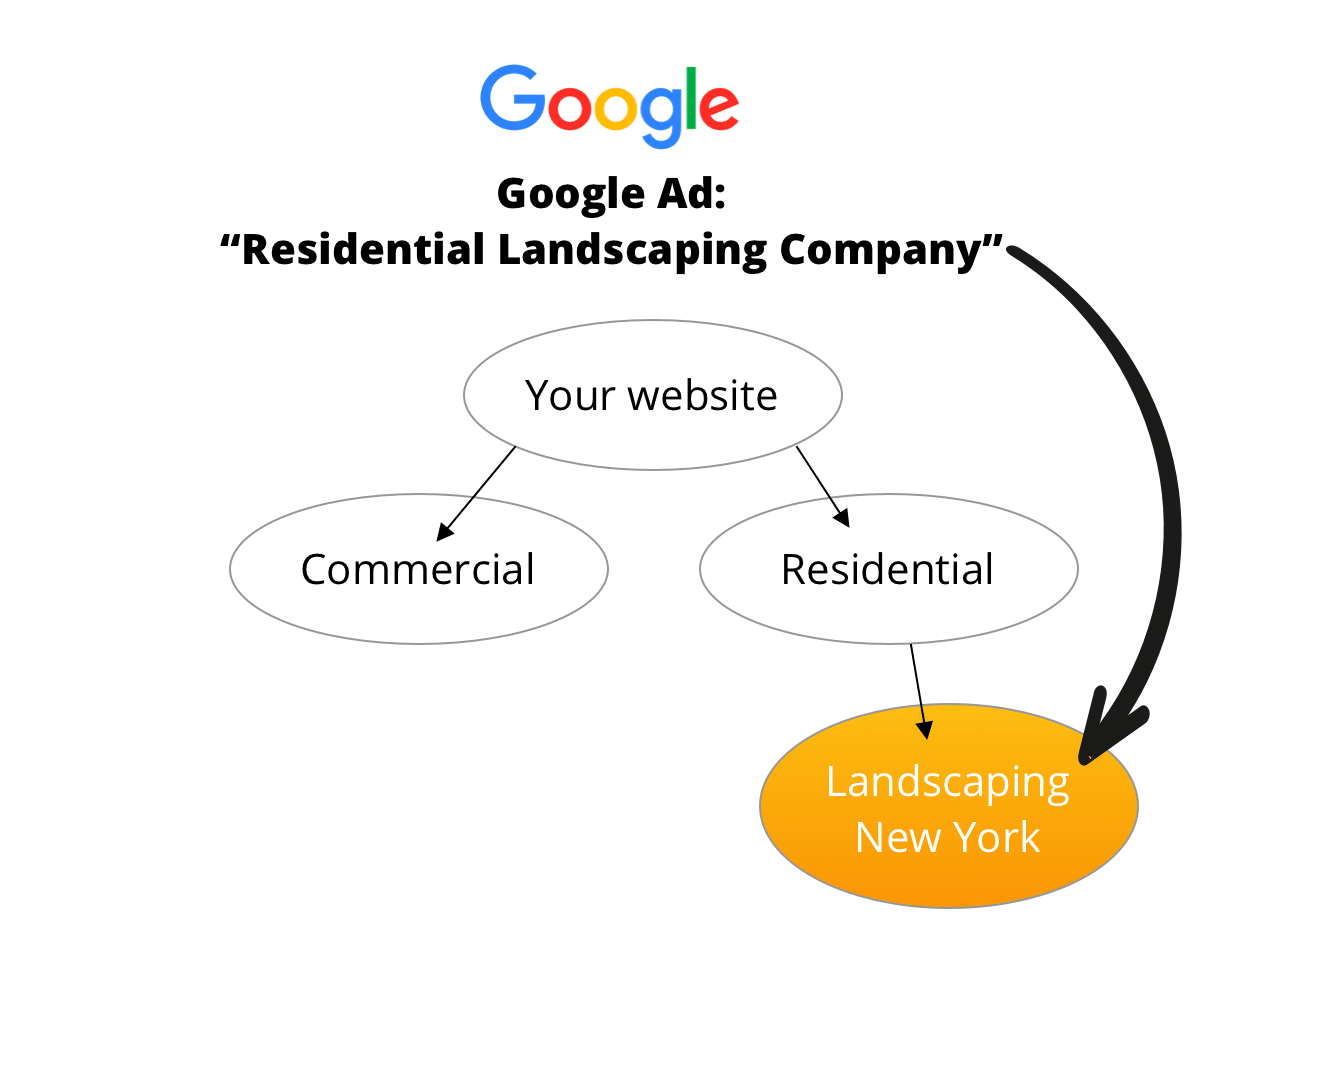 google-ad-to-landing-page-content-results